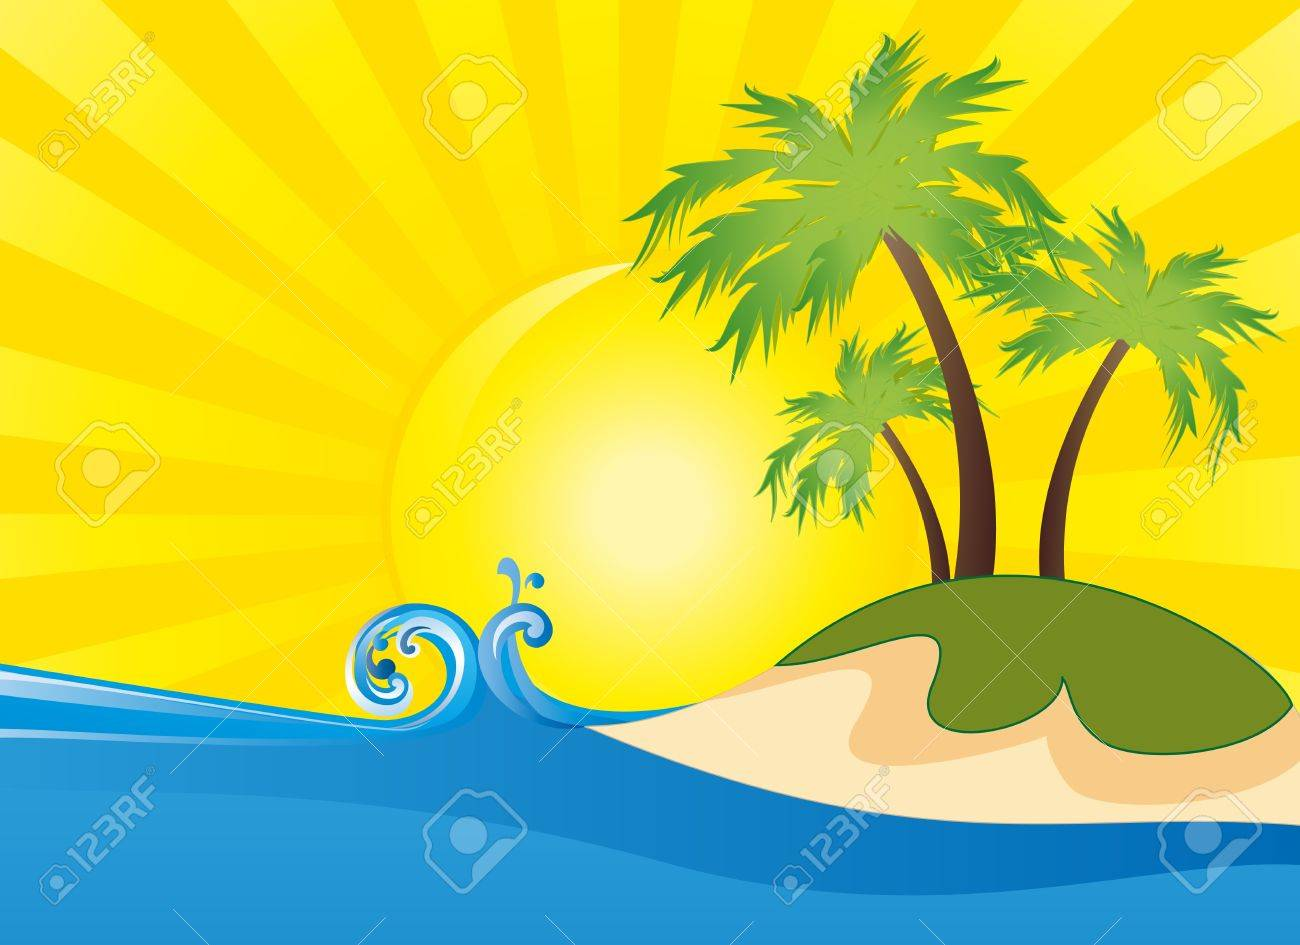 summer themed beach illustration background royalty free cliparts